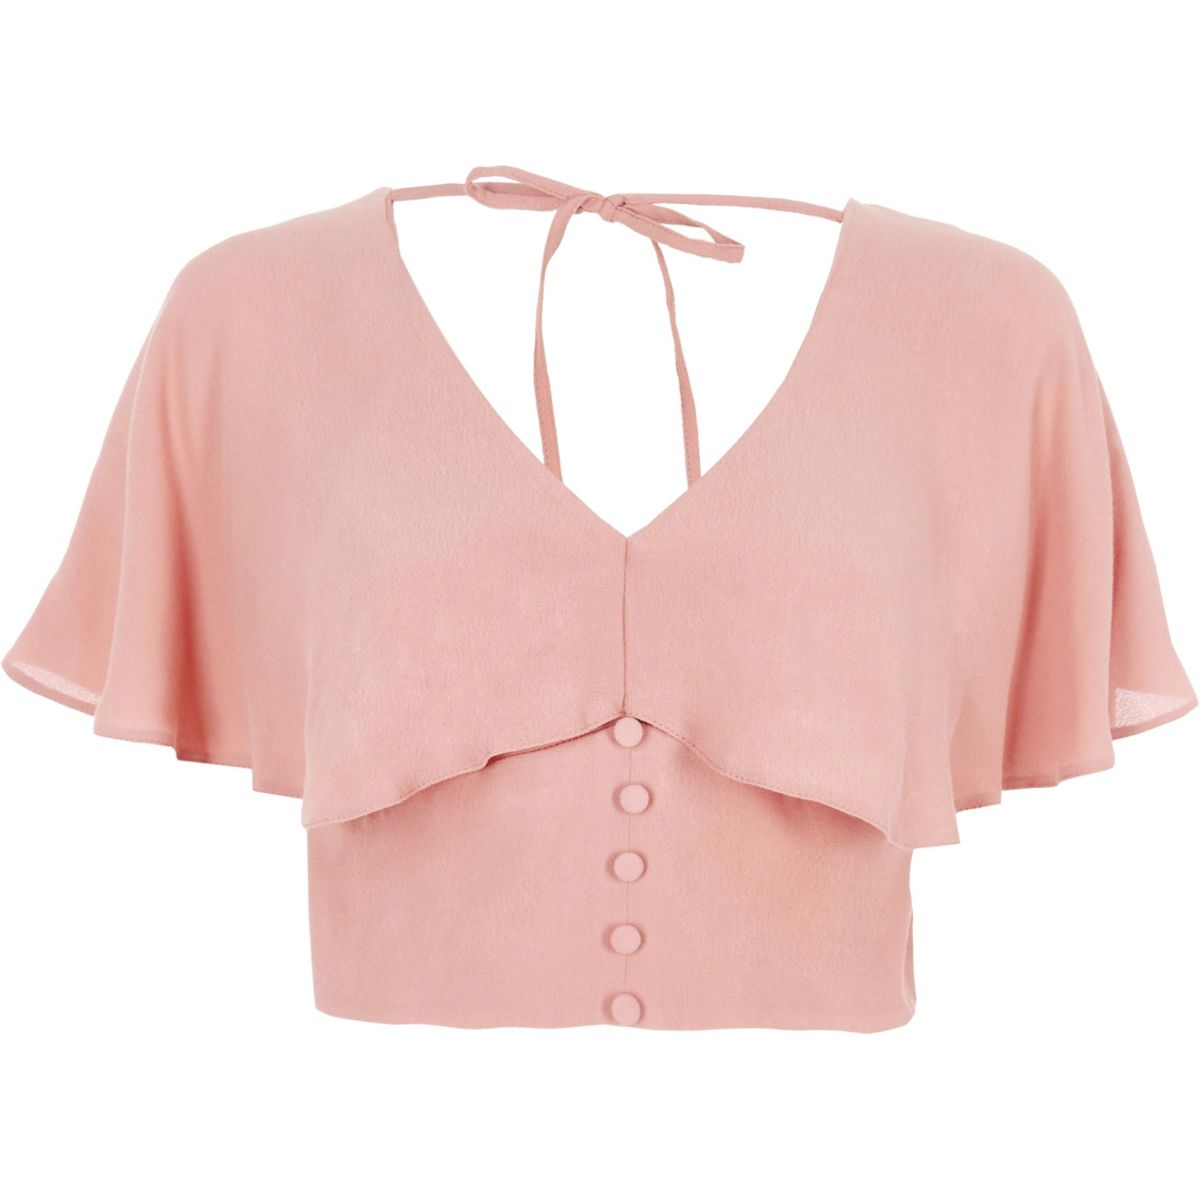 Pink cape tie back crop top